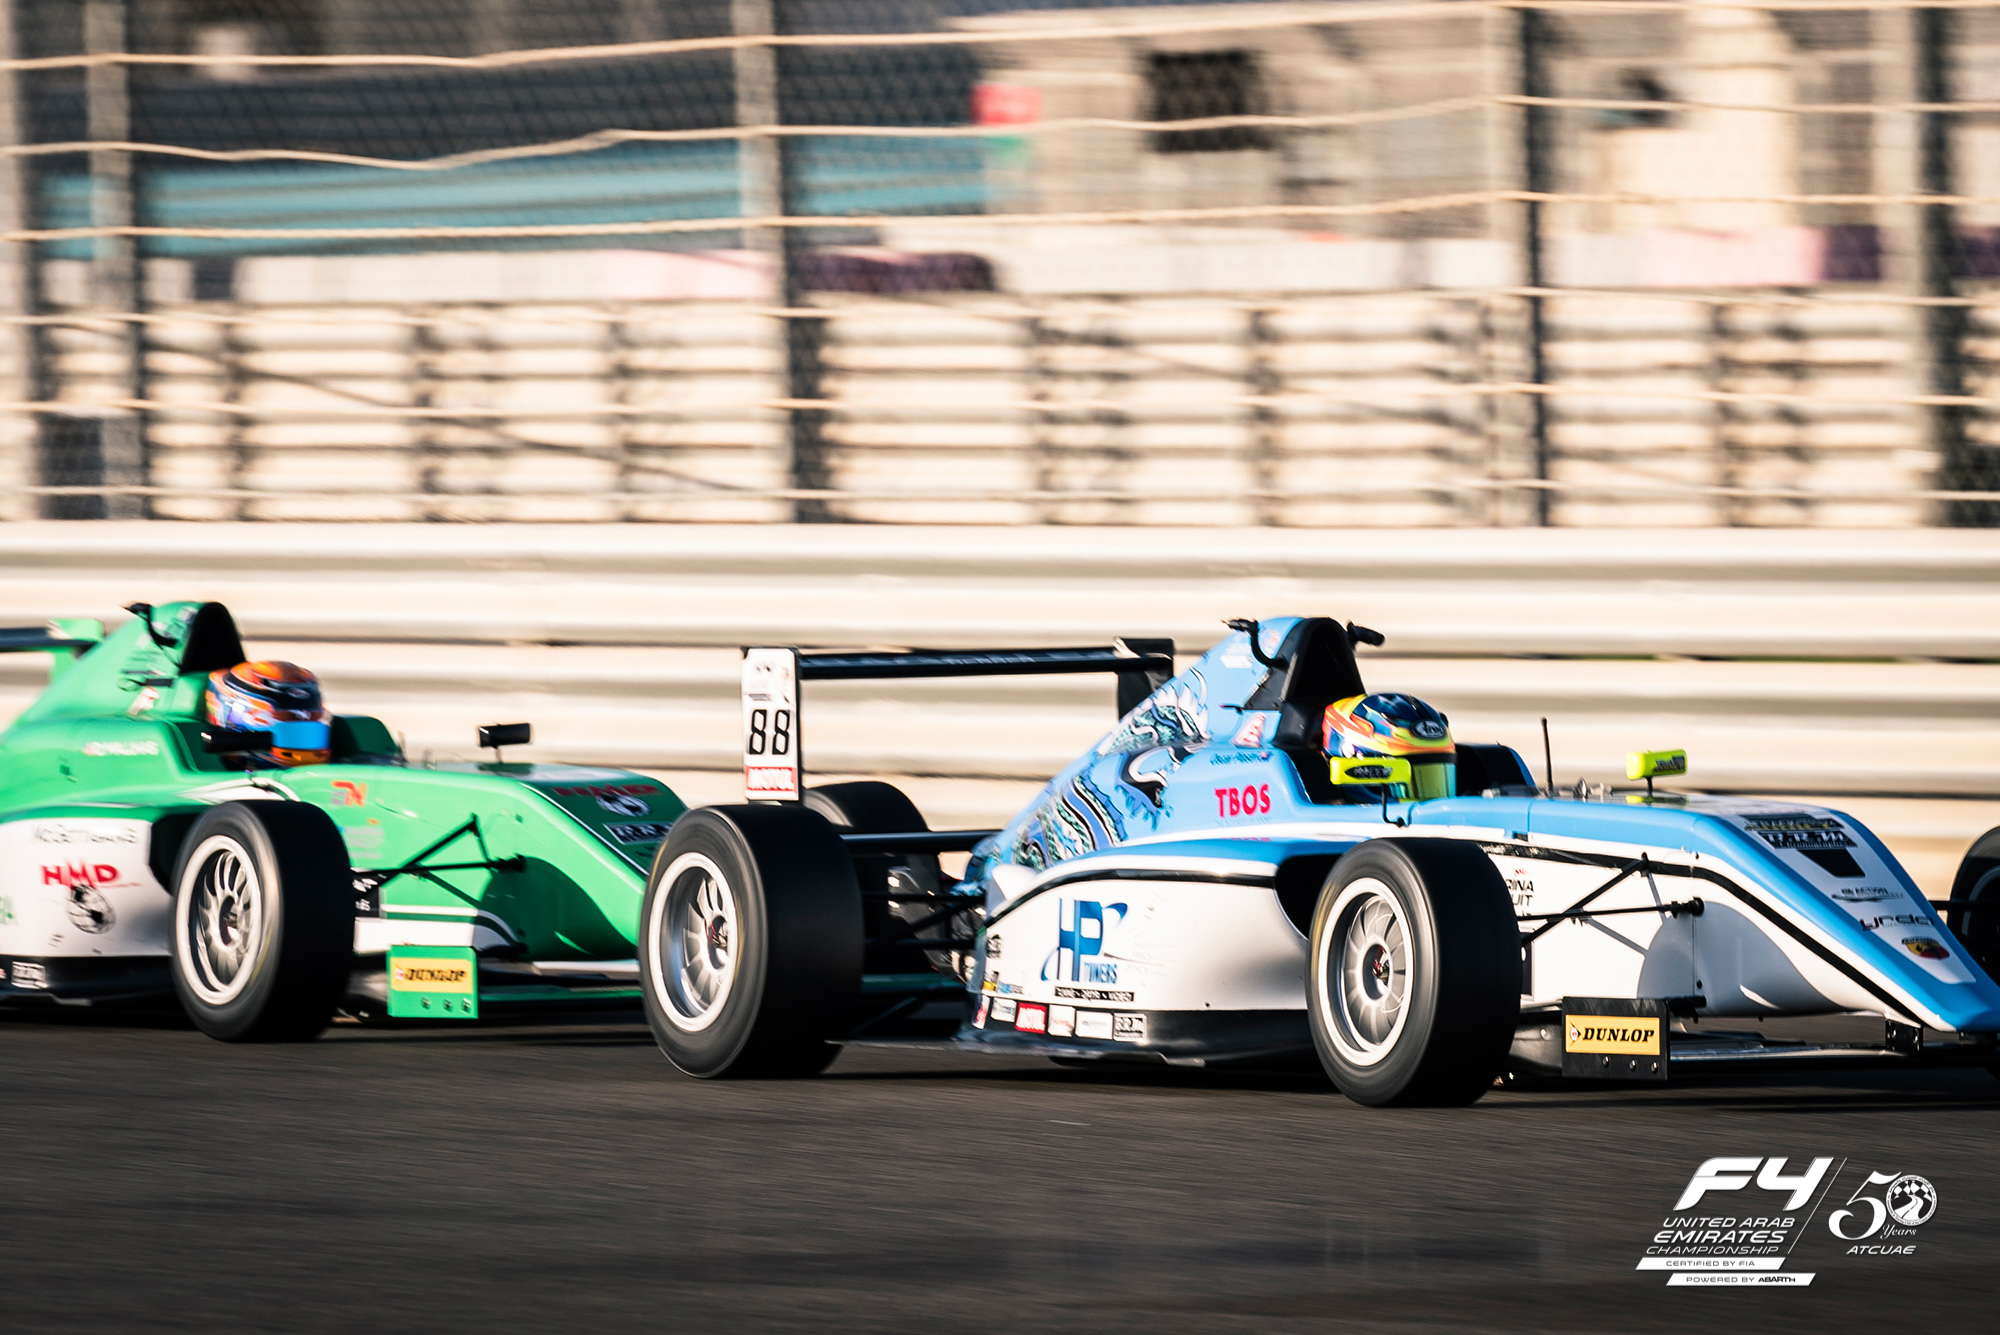 2016 12 18   F4 Second Roud   Abu Dhabi 8 Of 39